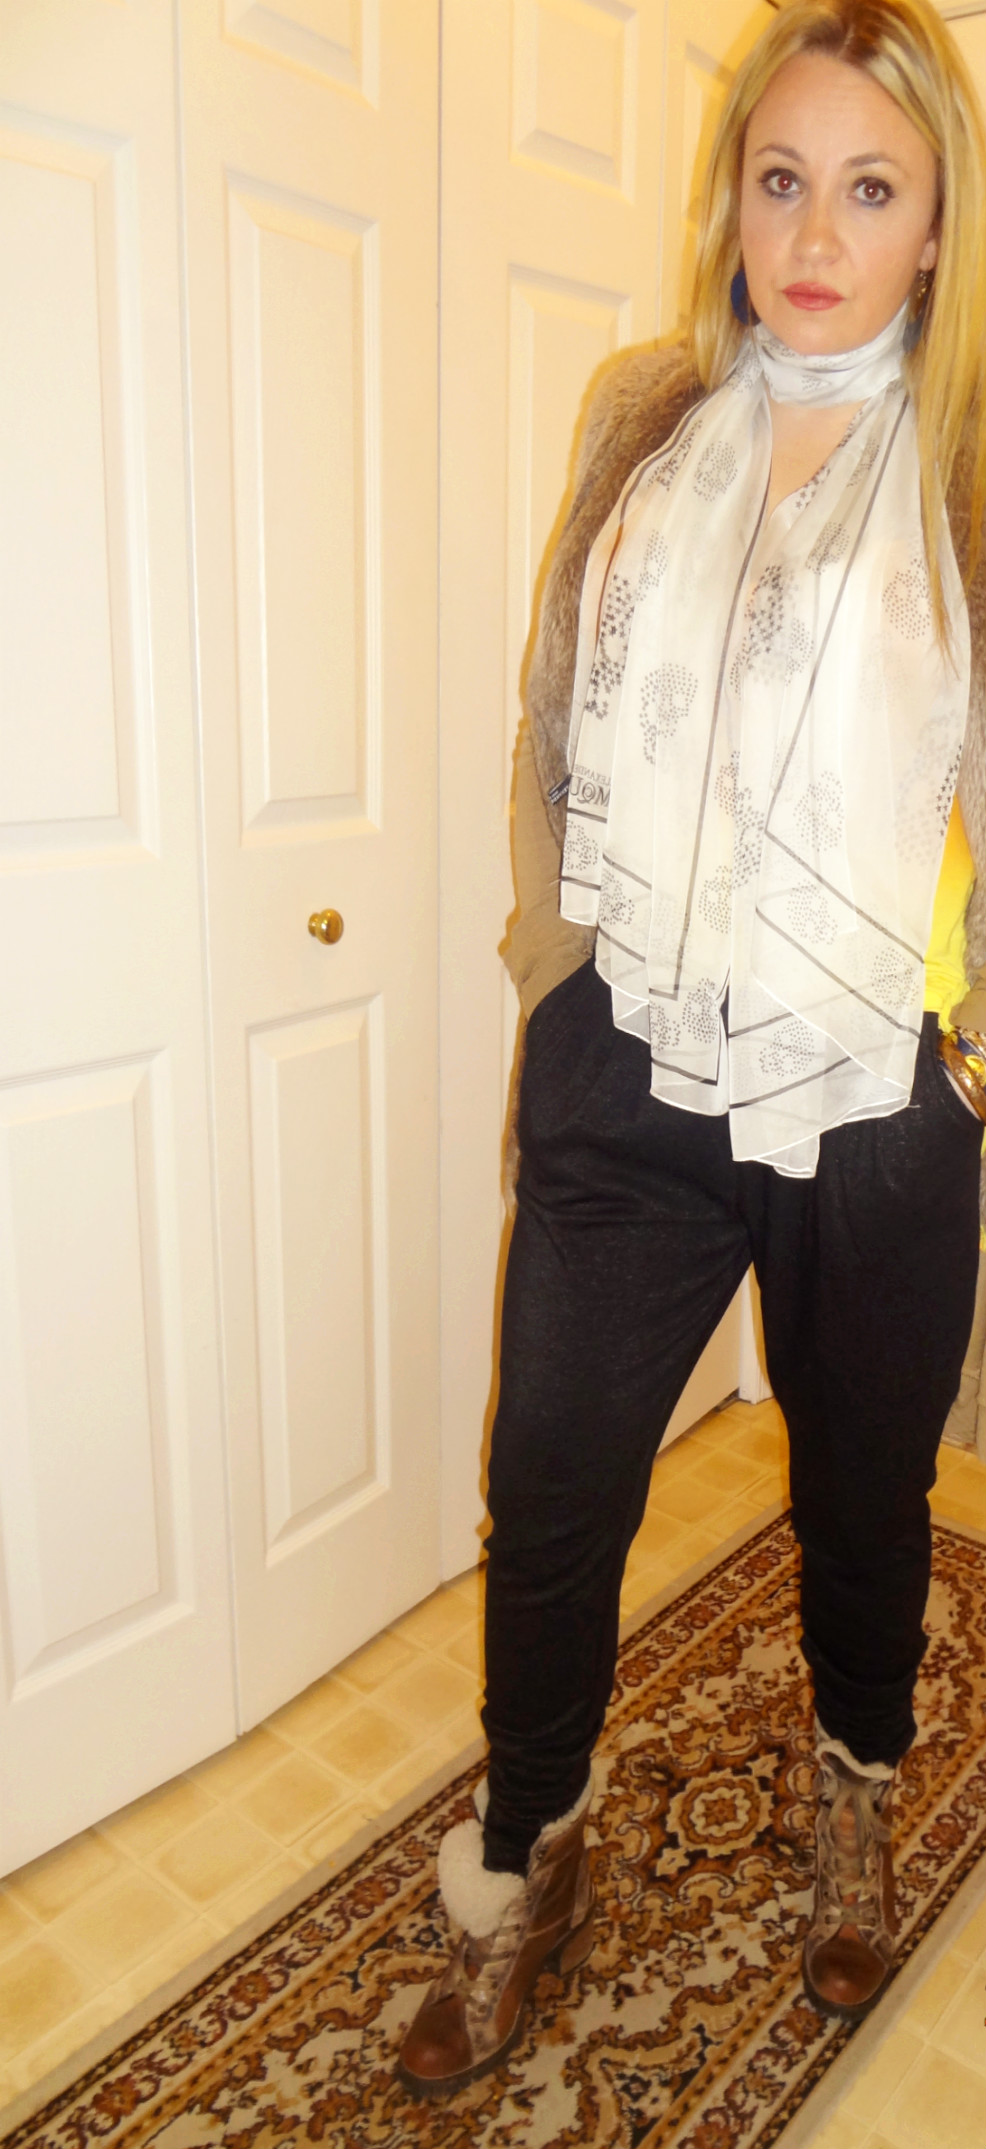 Vest: Zara ( similar here ), Cardigan: Anthropologie, Top: H&M, Scarf:  Alexander McQueen , Pants: H&M, Boots: Aldo, Necklace: Kenneth Jay Lane, Earrings: One Kings Lane